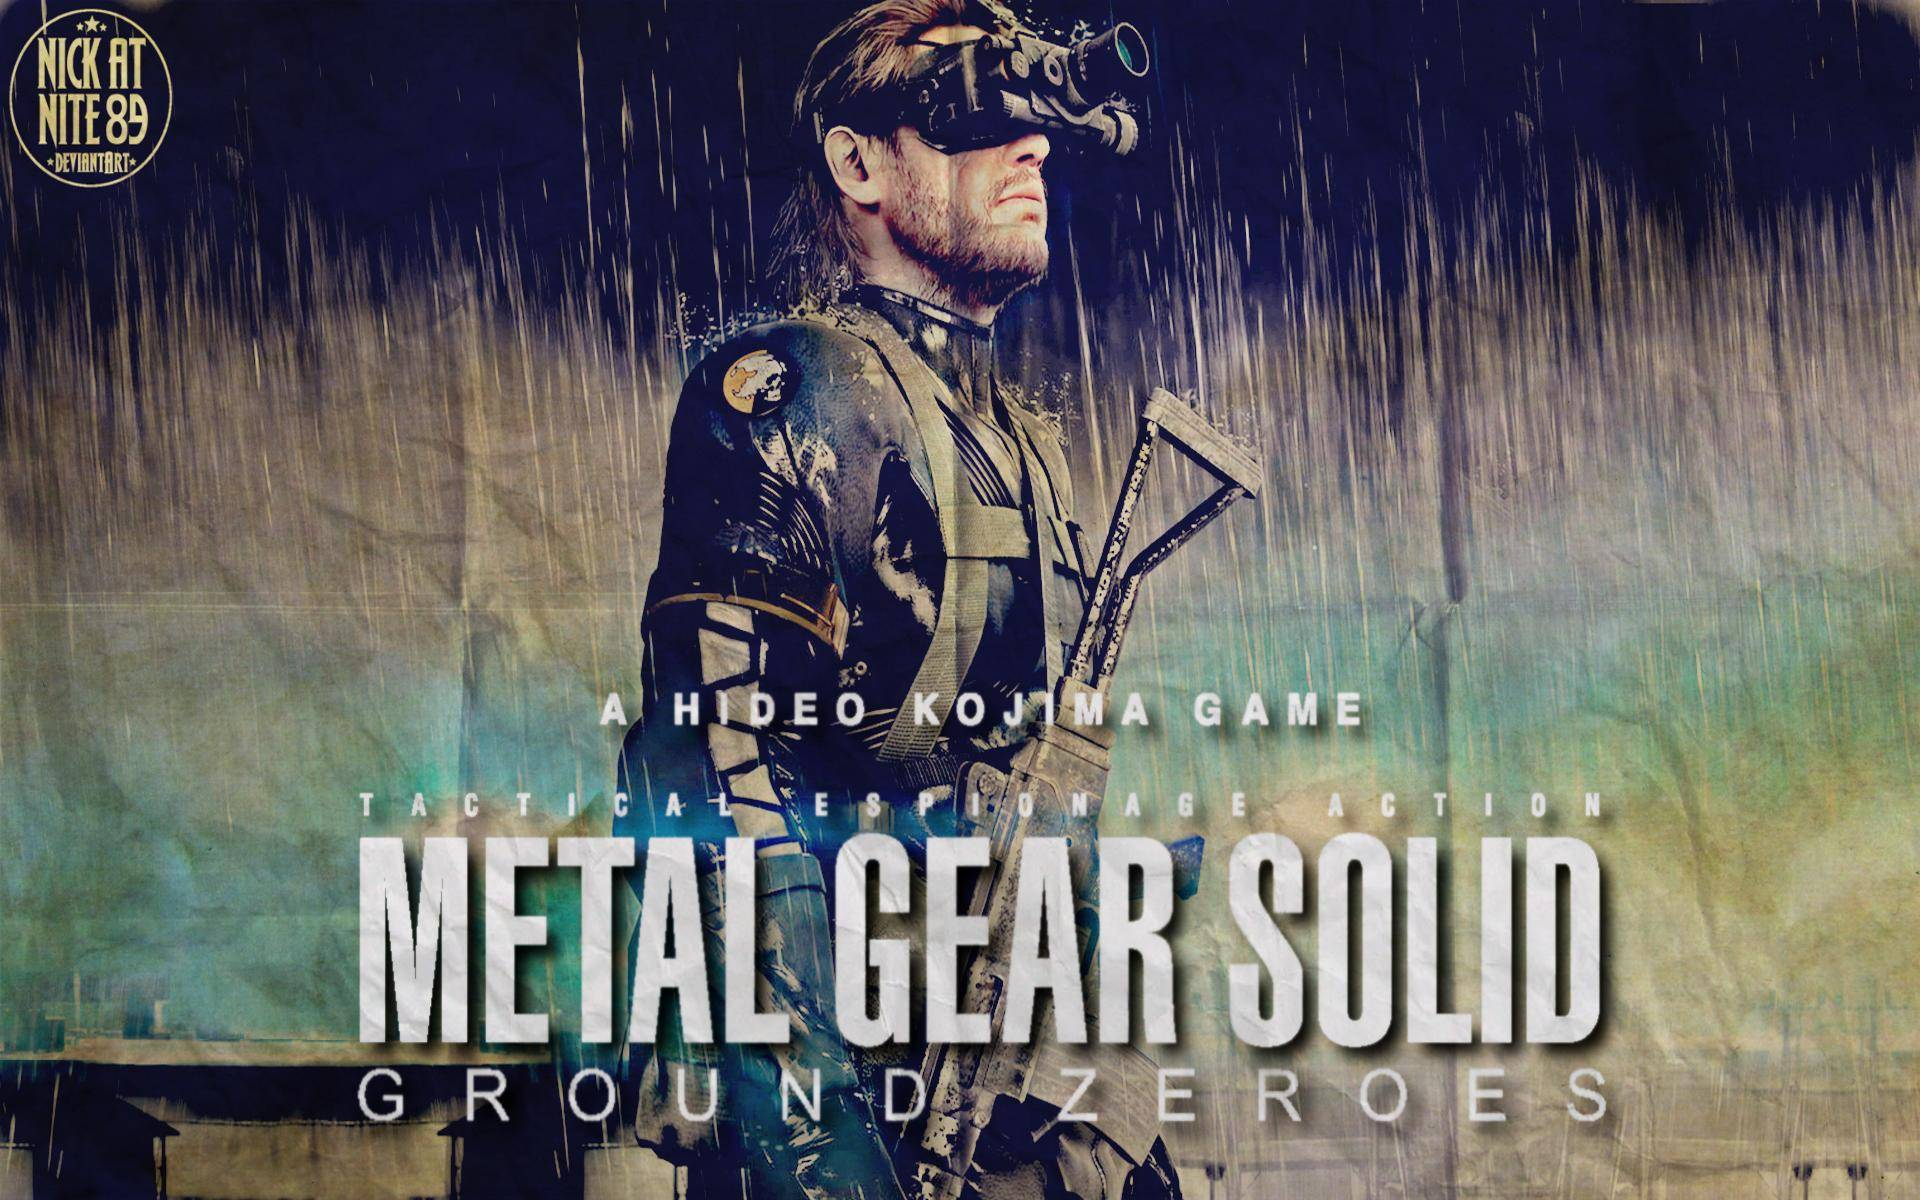 Metal Gear Solid Ground Zeroes is due for the PS3, Xbox 360 and PC. It